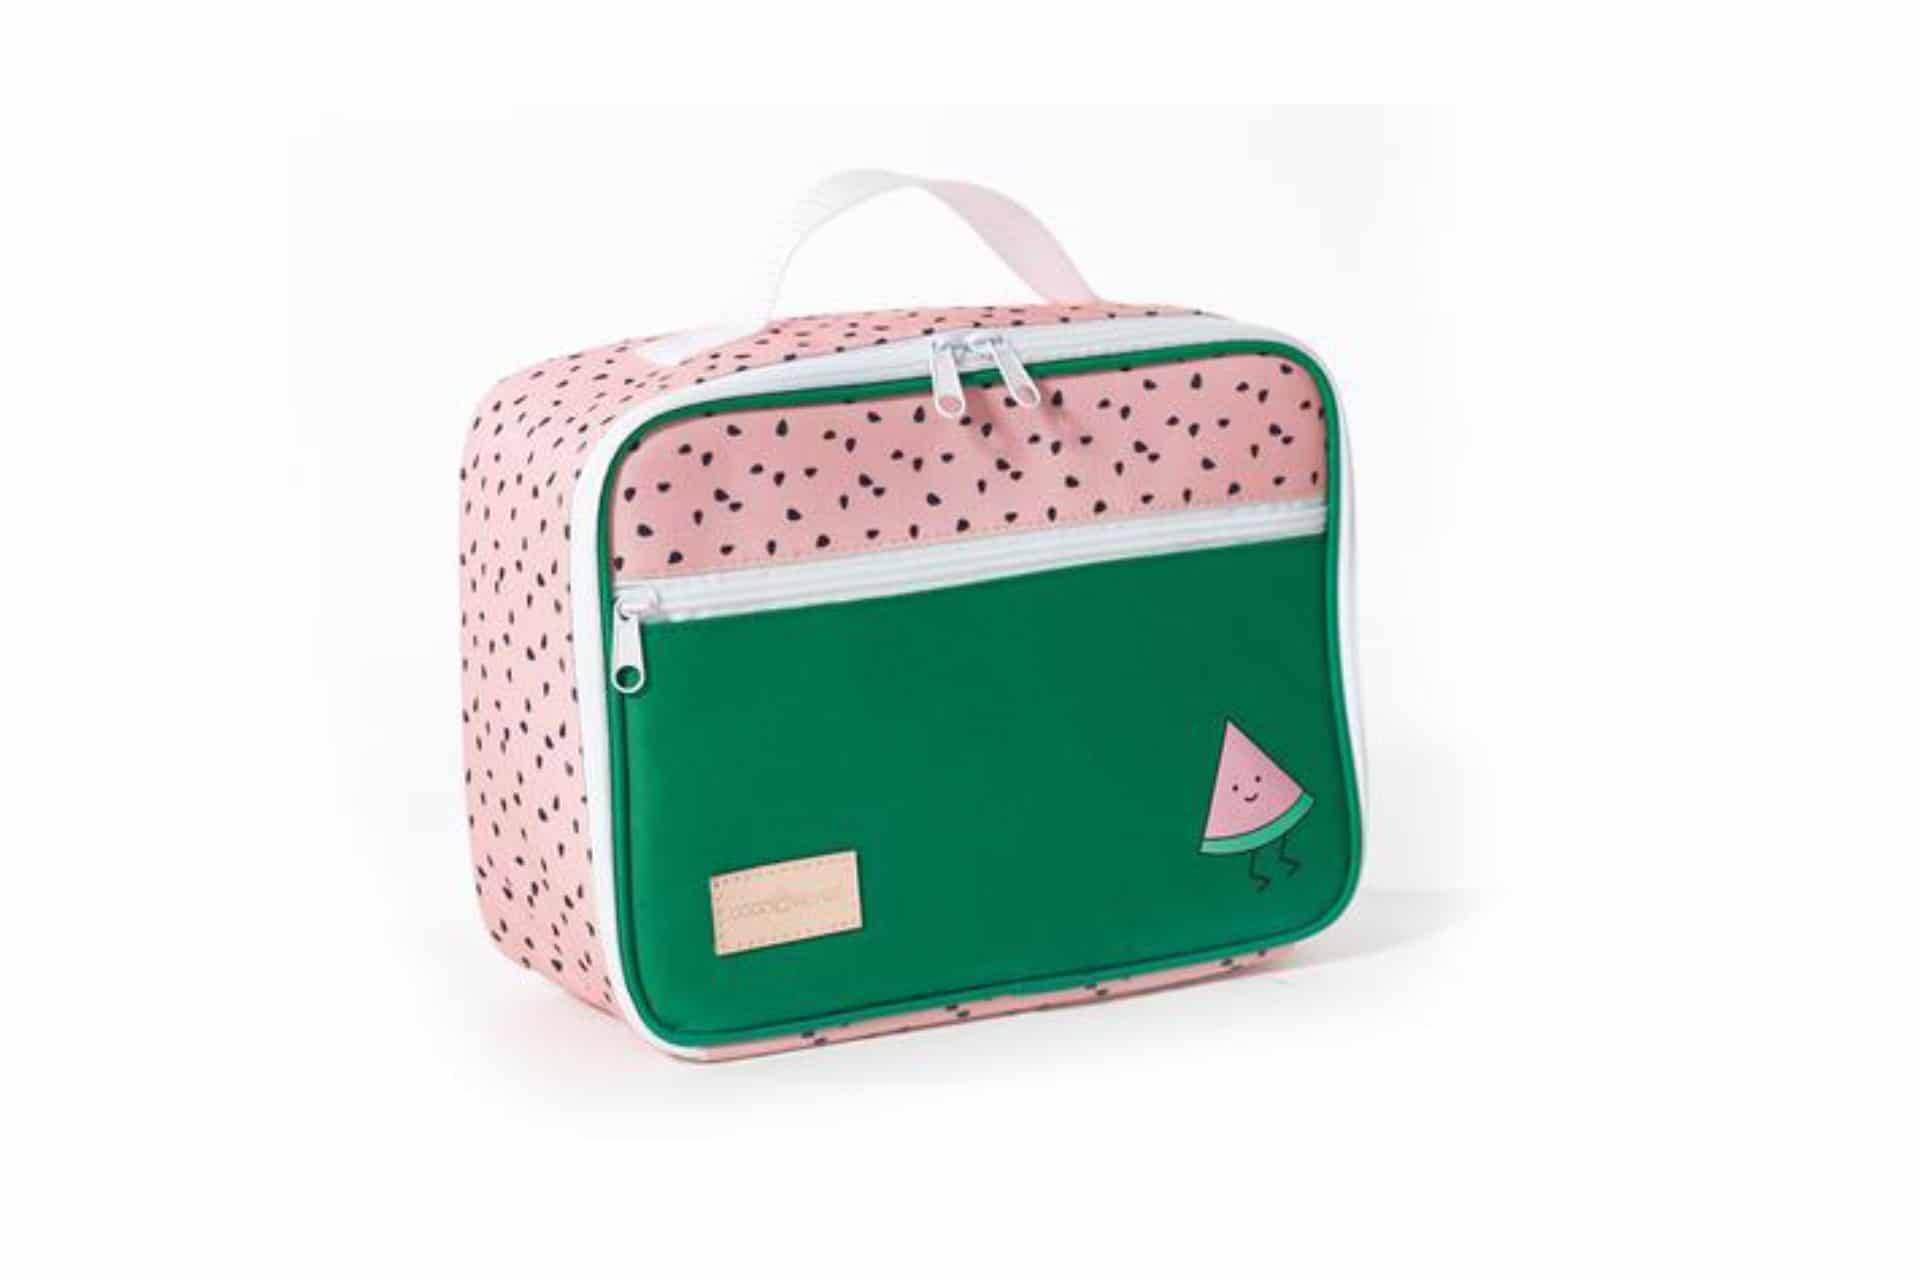 lunch box with a watermelon print